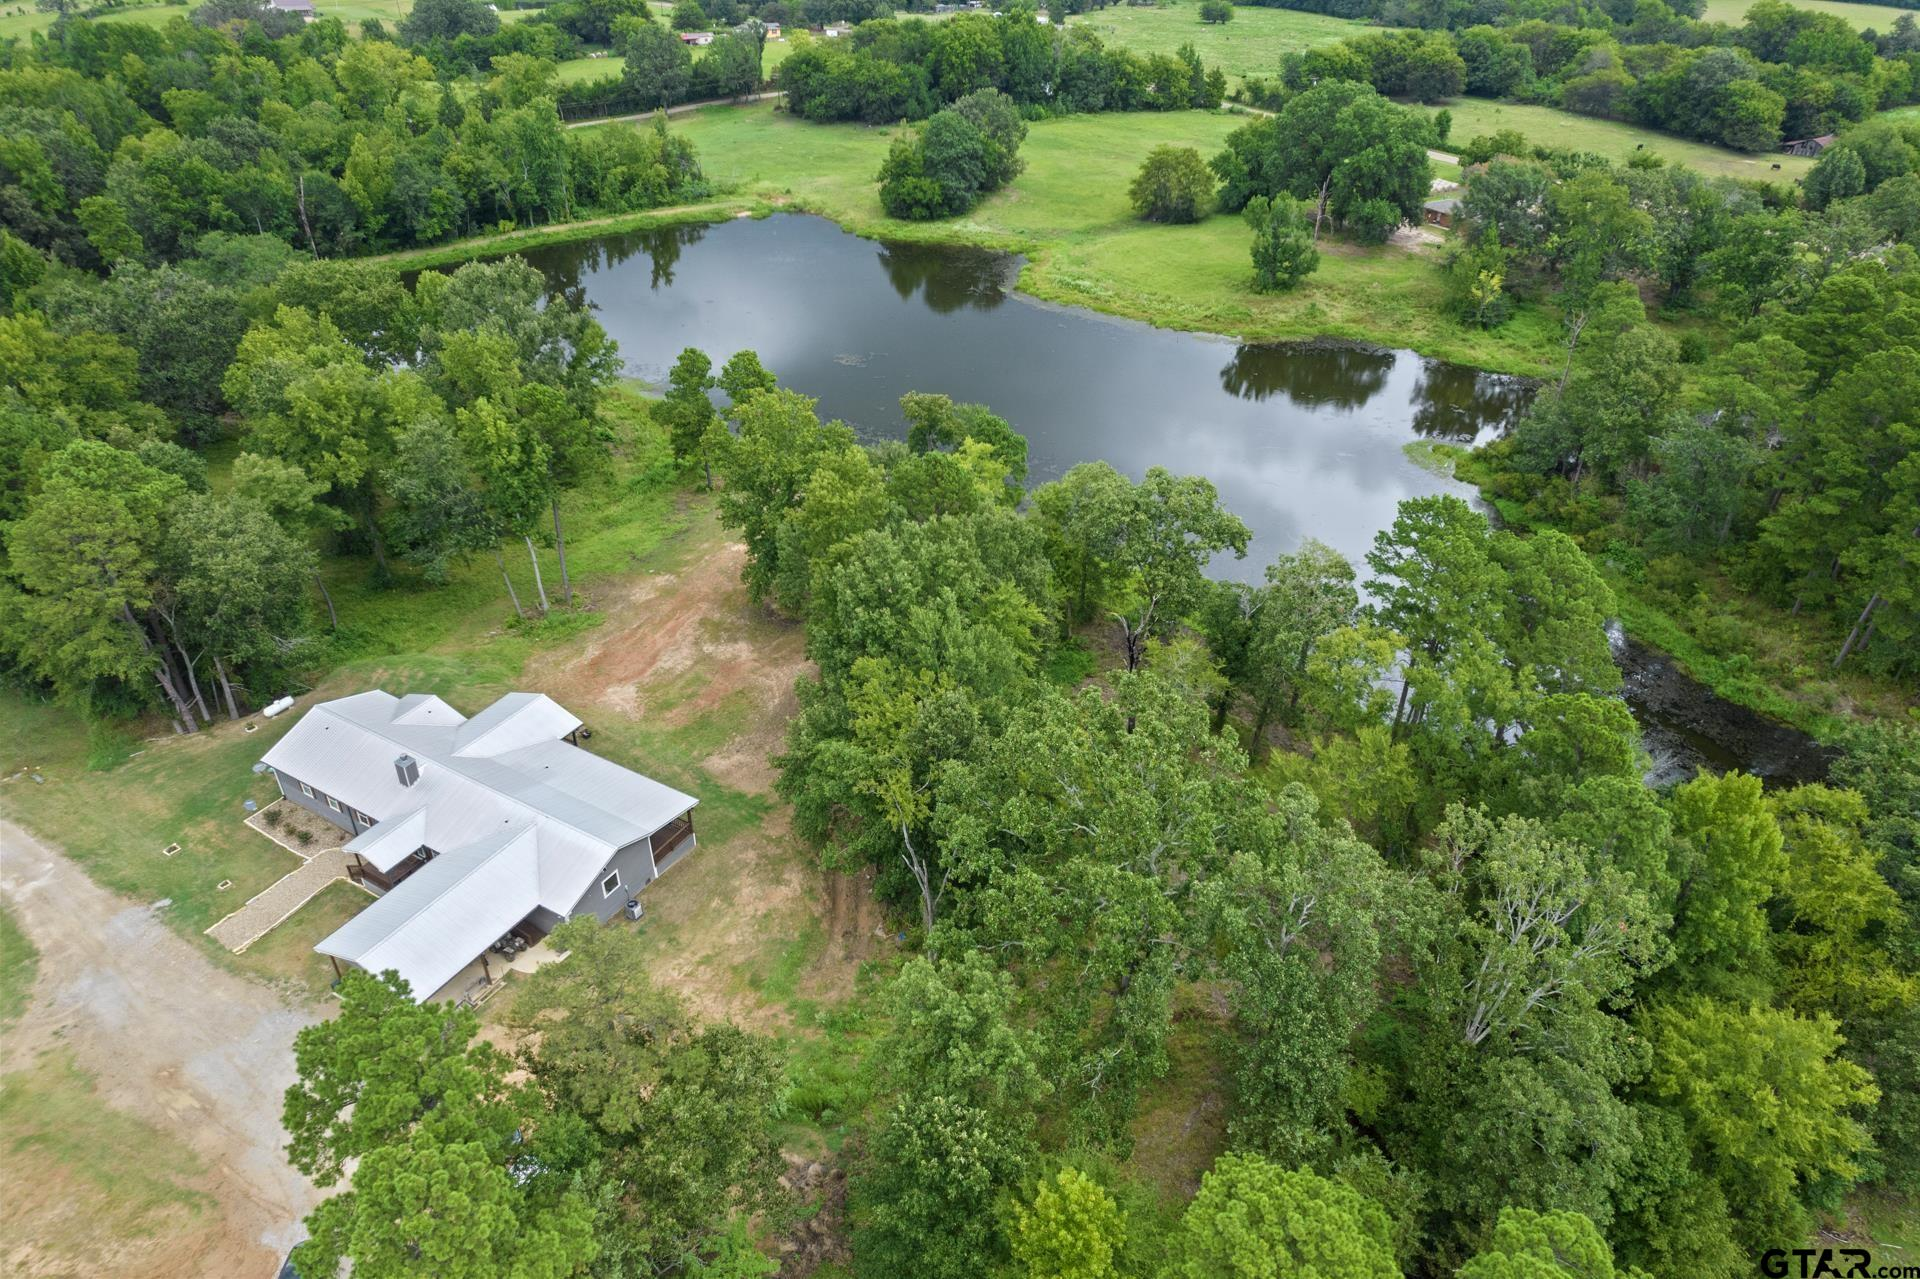 Country Oasis! Opportunities like this don't come often. Charm, character, and attention to detail abound in this custom built pier and beam home. With over 800 sqft of porches, perfectly situated to take every stunning view of the 4+ acre natural spring fed lake, you will be hard pressed to find this kind of peace and serenity elsewhere. The open concept living space with grand rock fireplace, kitchen any chef would be at home in with leather finish granite countertops and stainless steel appliances, and dining room with the perfect waterview make this beautiful home the perfect place for entertaining! Dual primary suites make this a truly unique build in its own right. While one features its own HVAC and on demand water heater making it the perfect in-law-suite. The entire back of the home has stunning views of the manicured property and a gorgeous private lake. Call today to schedule your private showing!